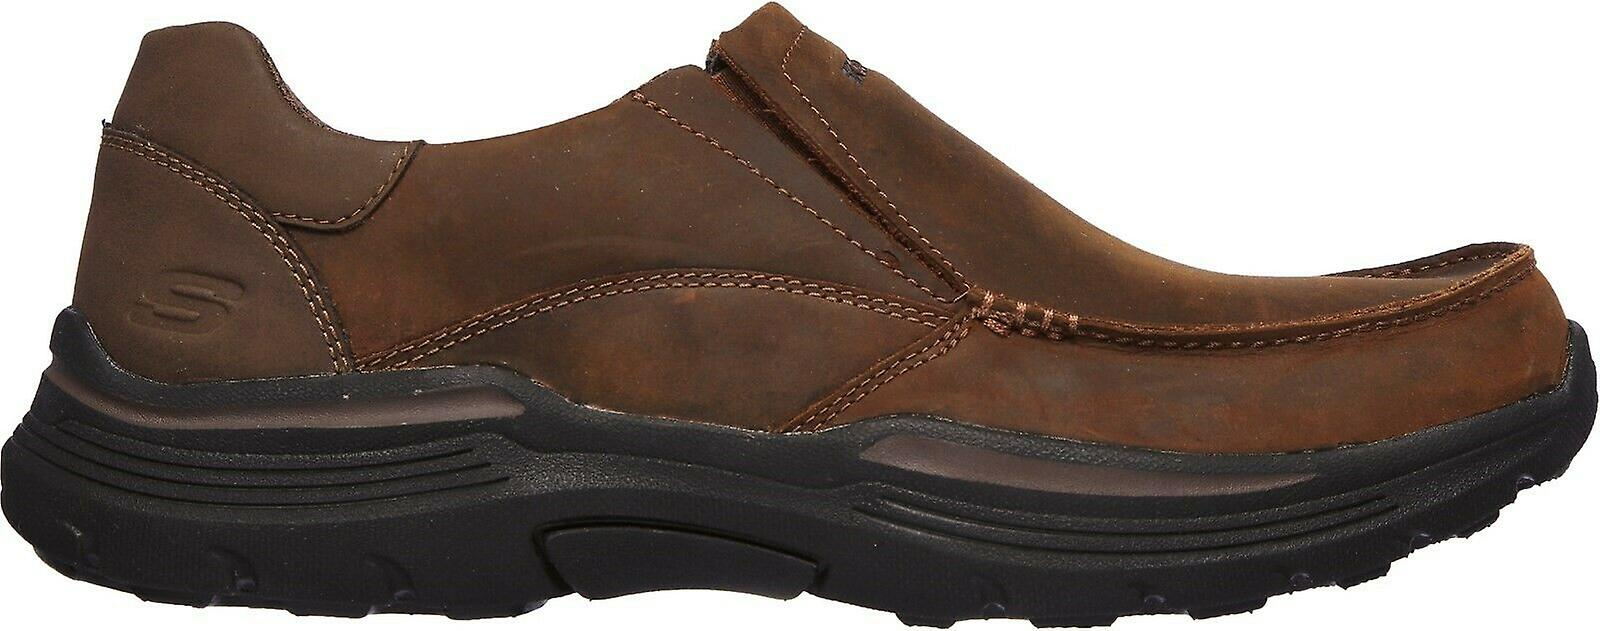 Skechers Mens Helano Leather Loafers